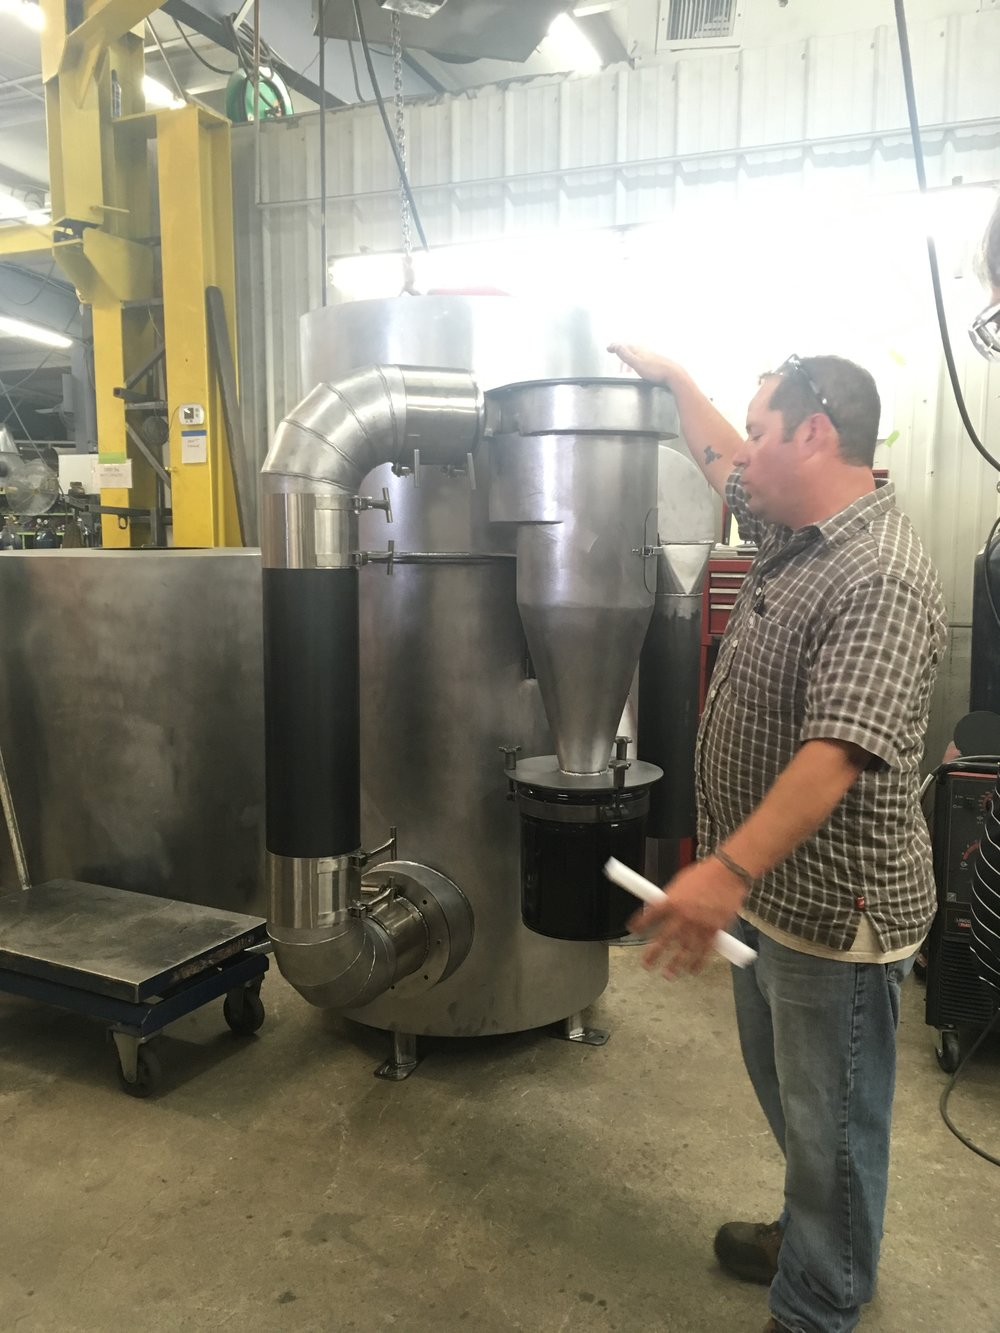 Chaff cyclone and oxidizer in production at Diedrich Roasters.